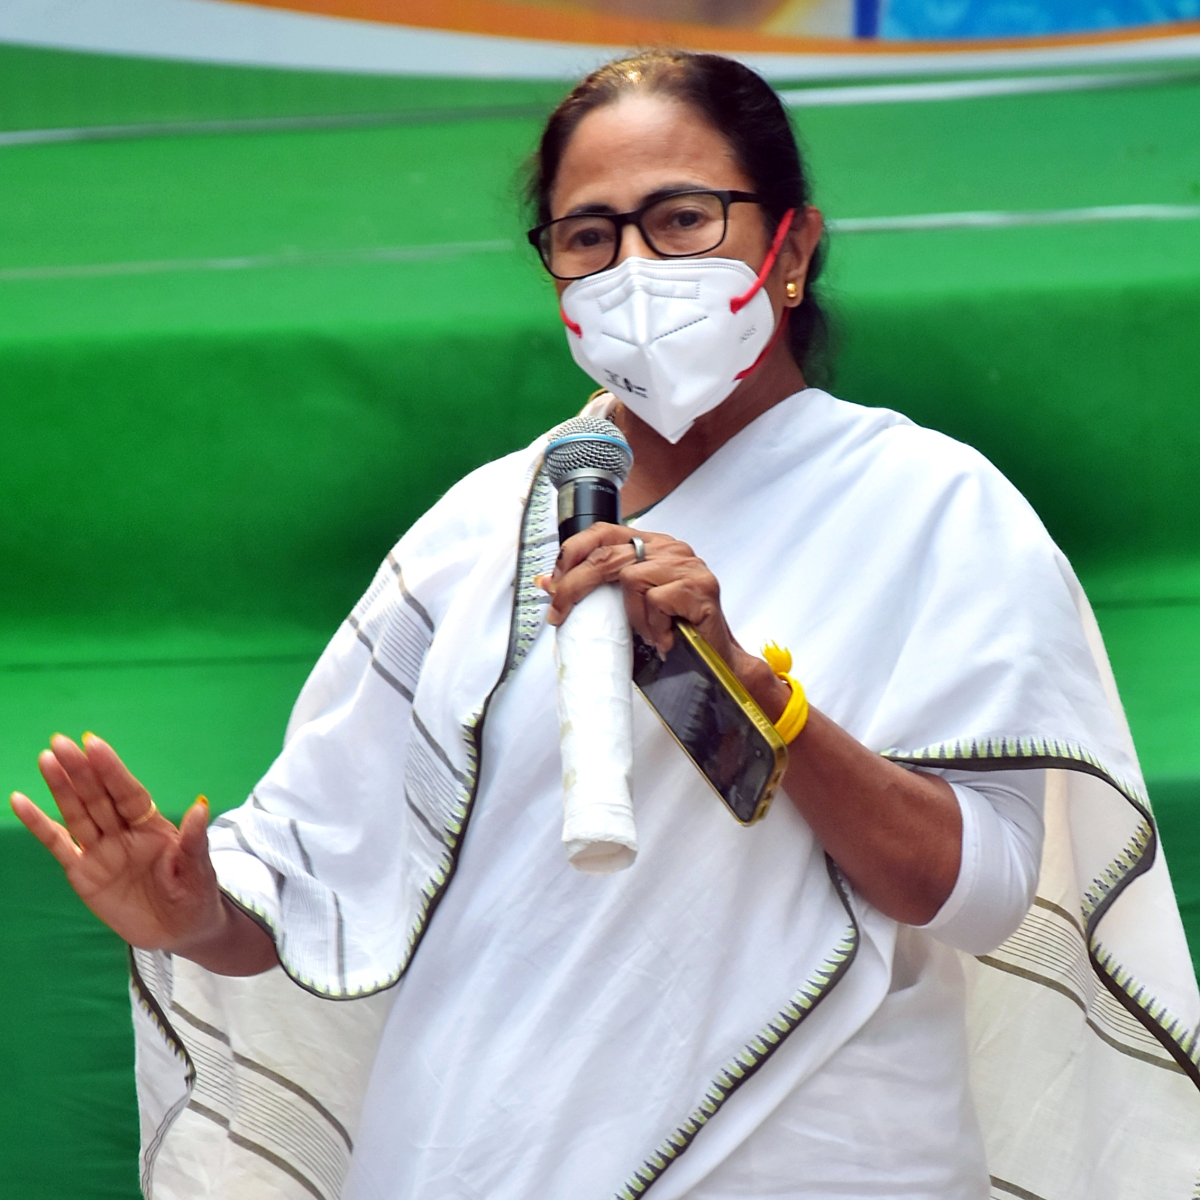 Returning officer's life was under threat: Mamata Banerjee claims foul play, to move court over Nandigram verdict